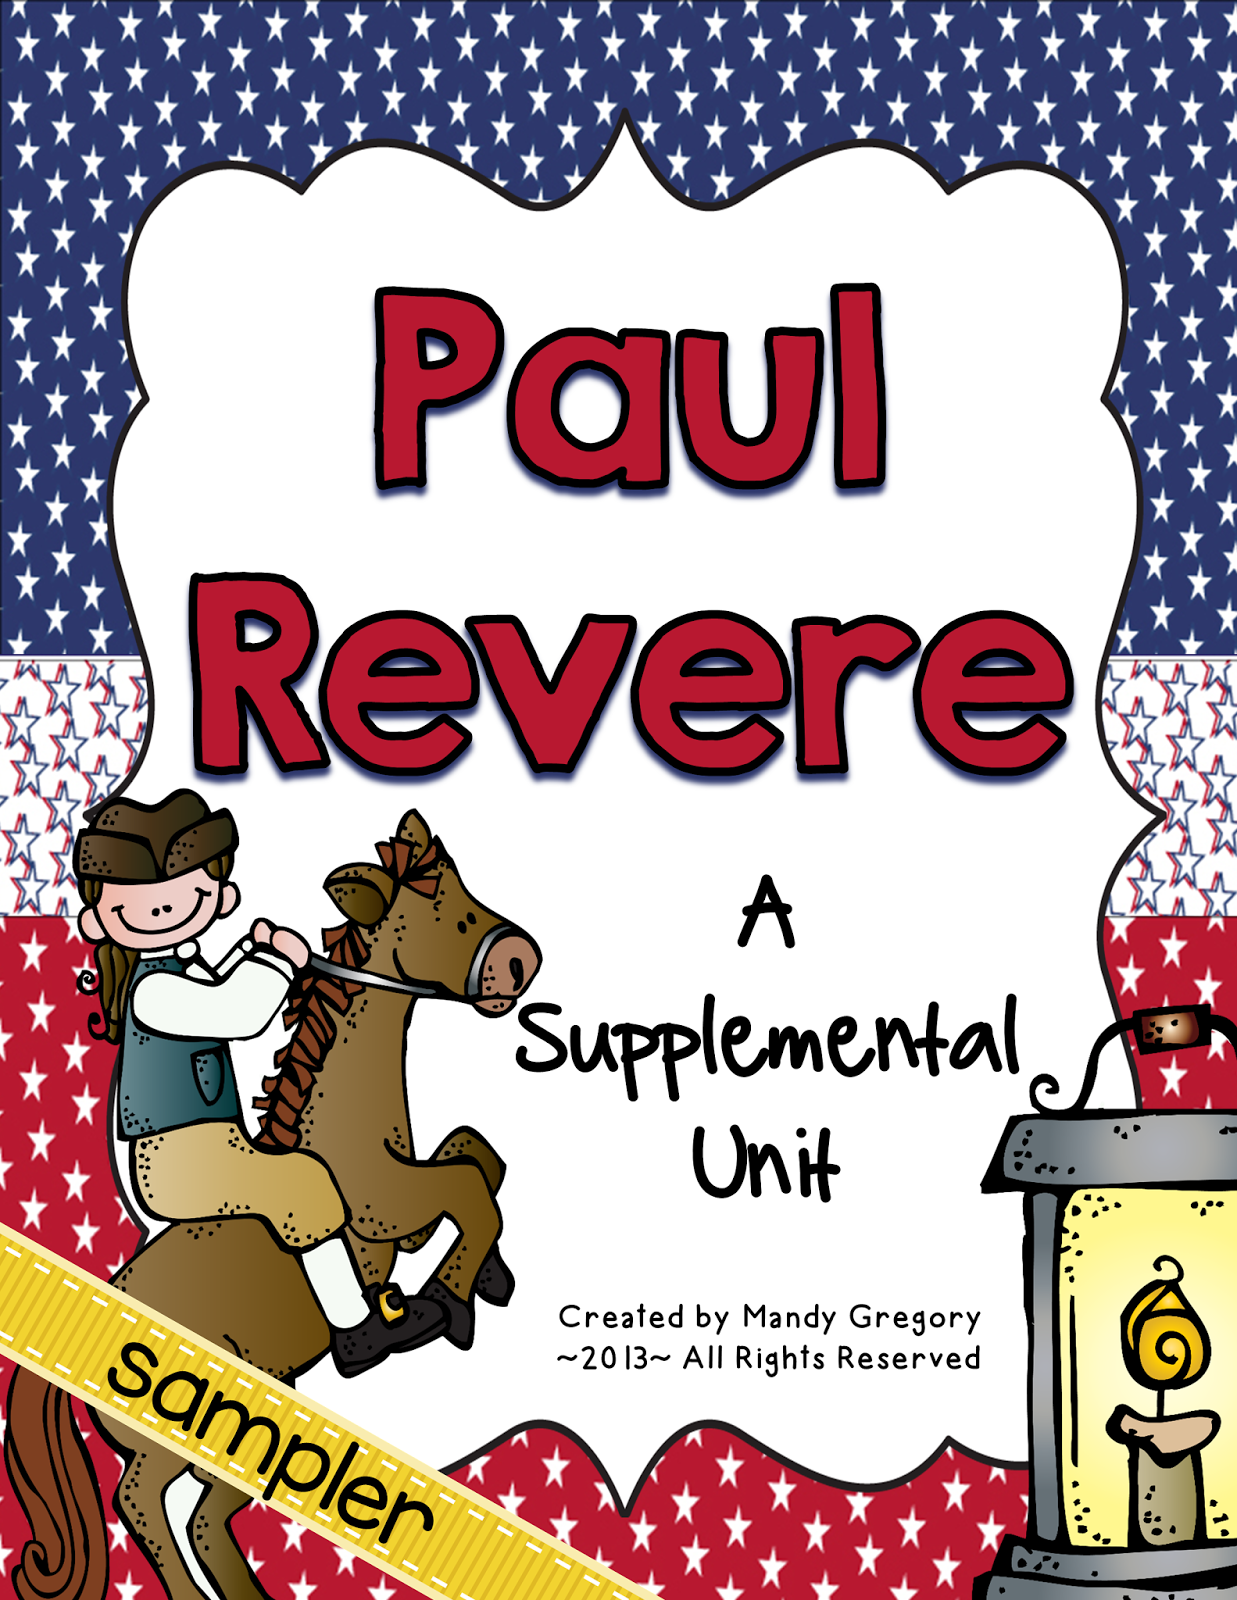 best images about rd grade american hero paul revere on 17 best images about 3rd grade american hero paul revere paul revere student and school house rocks